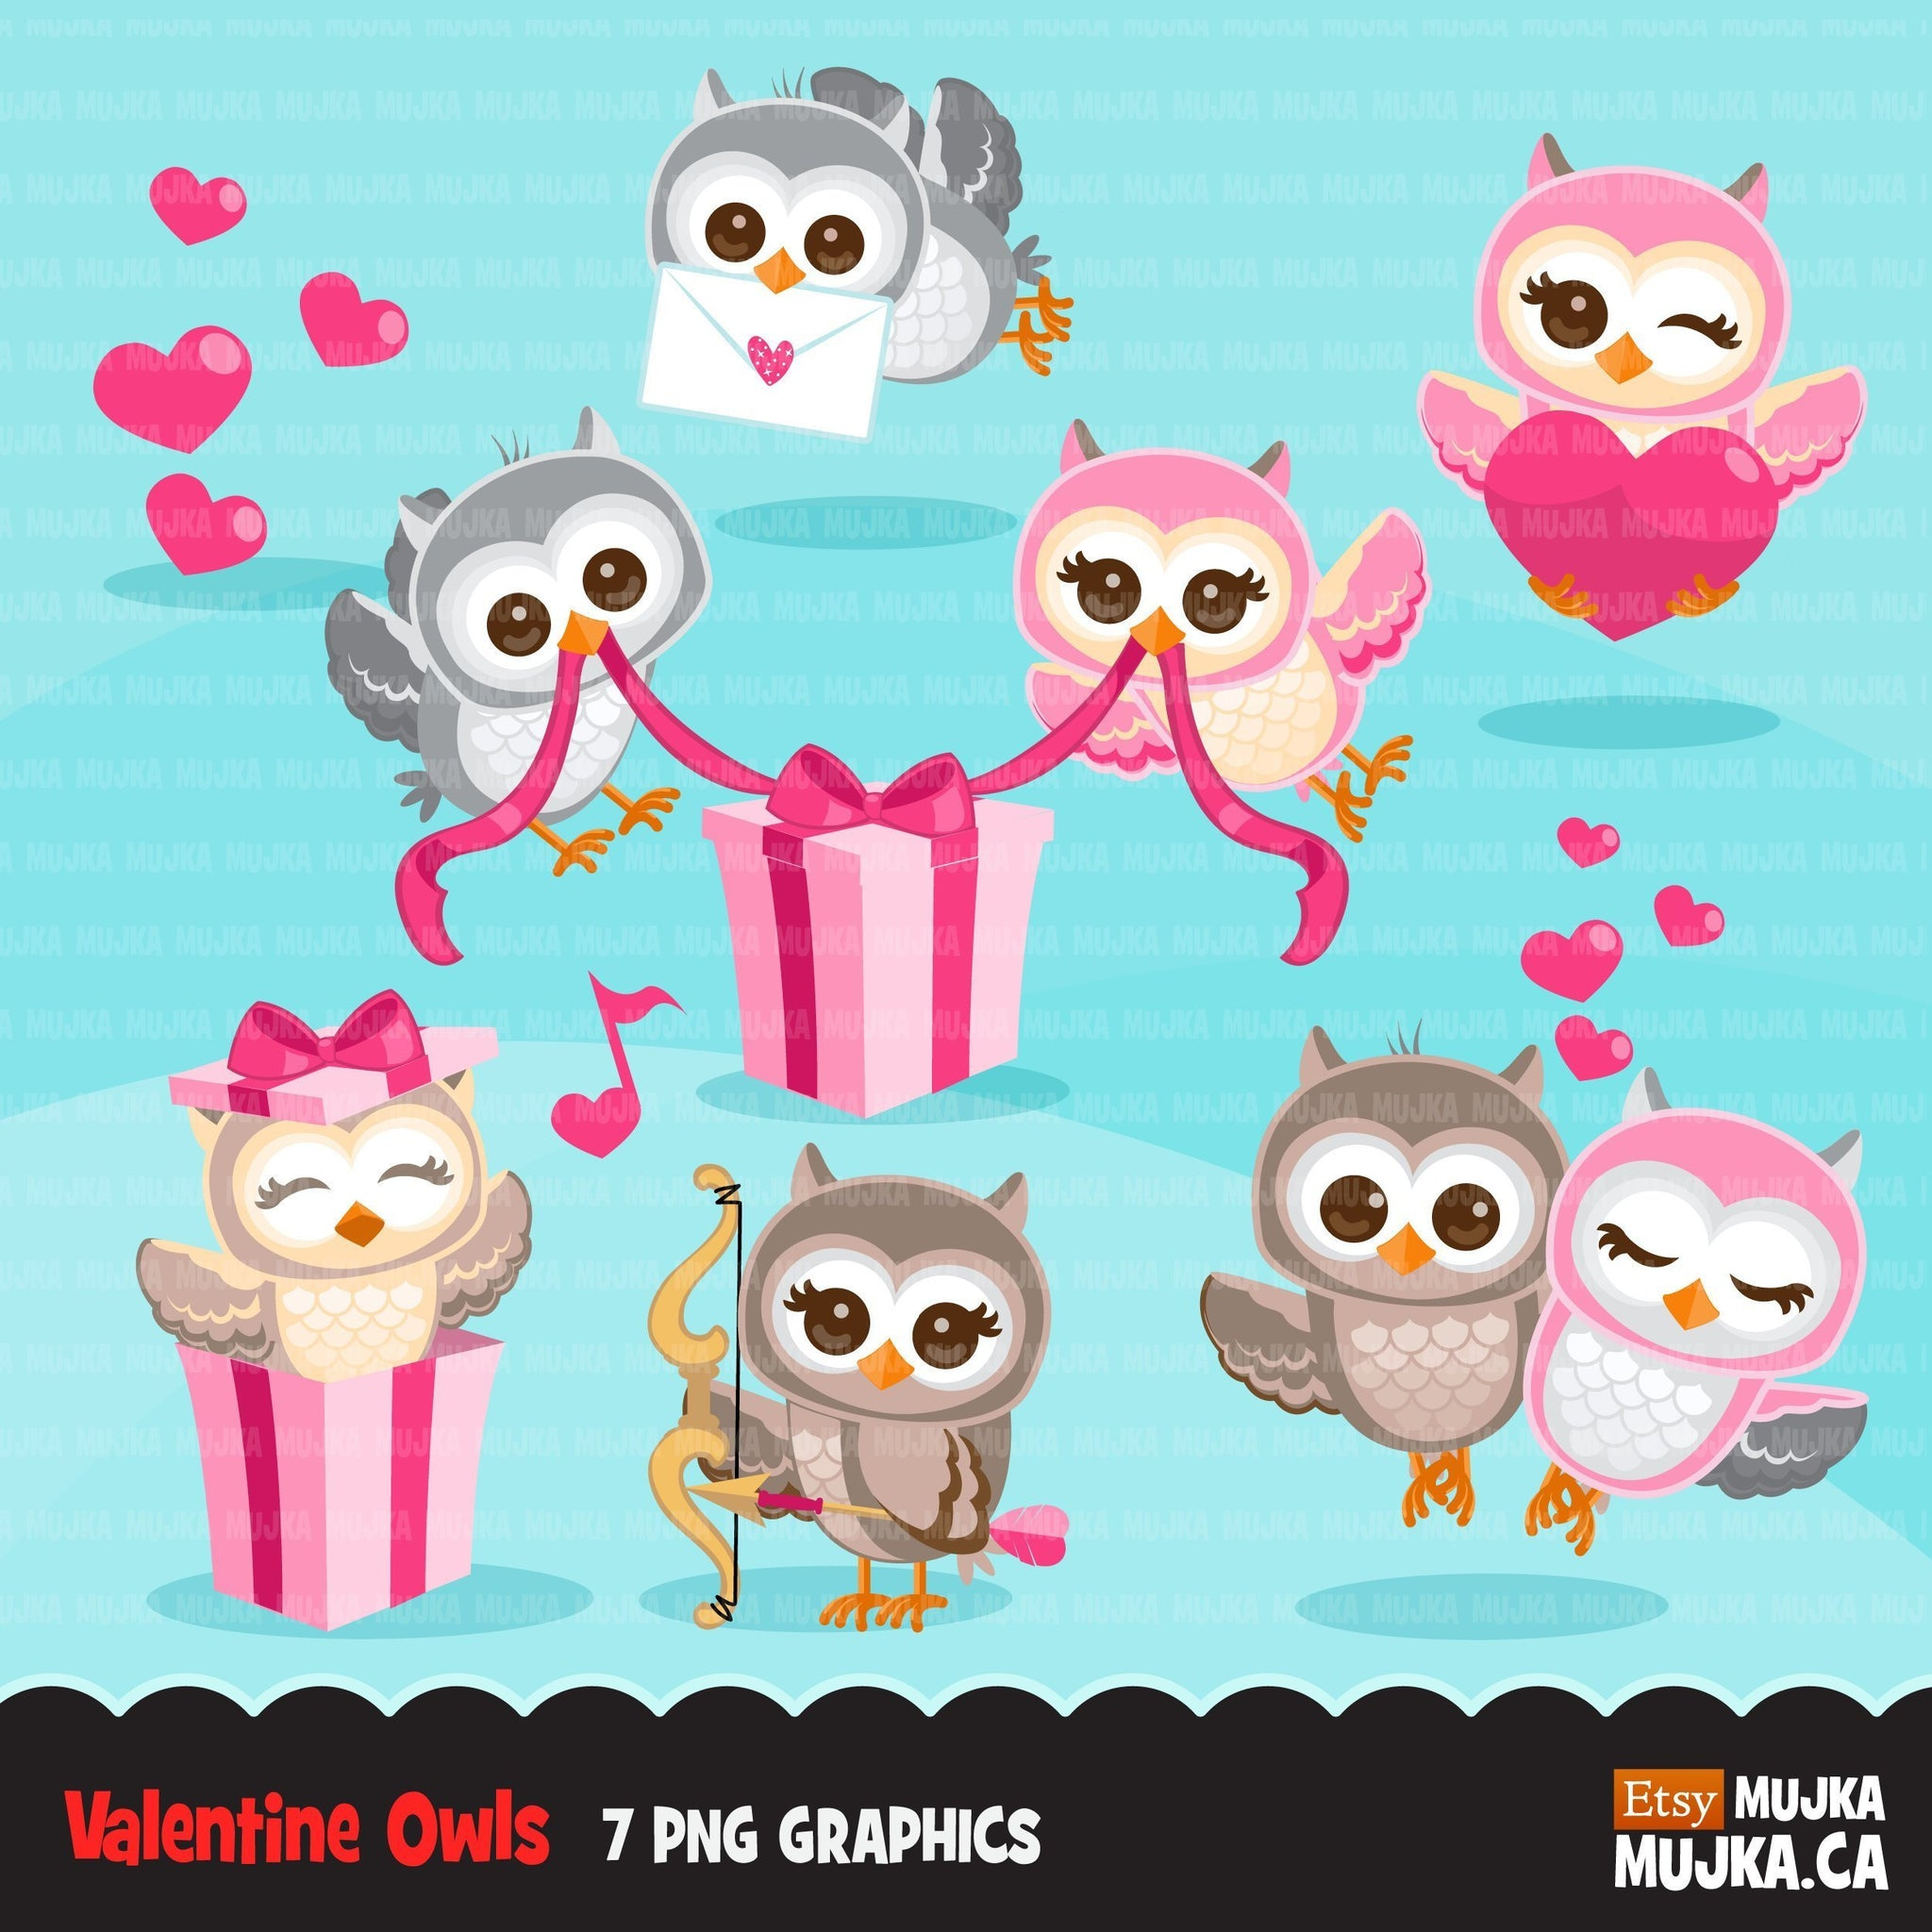 Free Valentine's Owl Cliparts, Download Free Clip Art, Free Clip Art on  Clipart Library